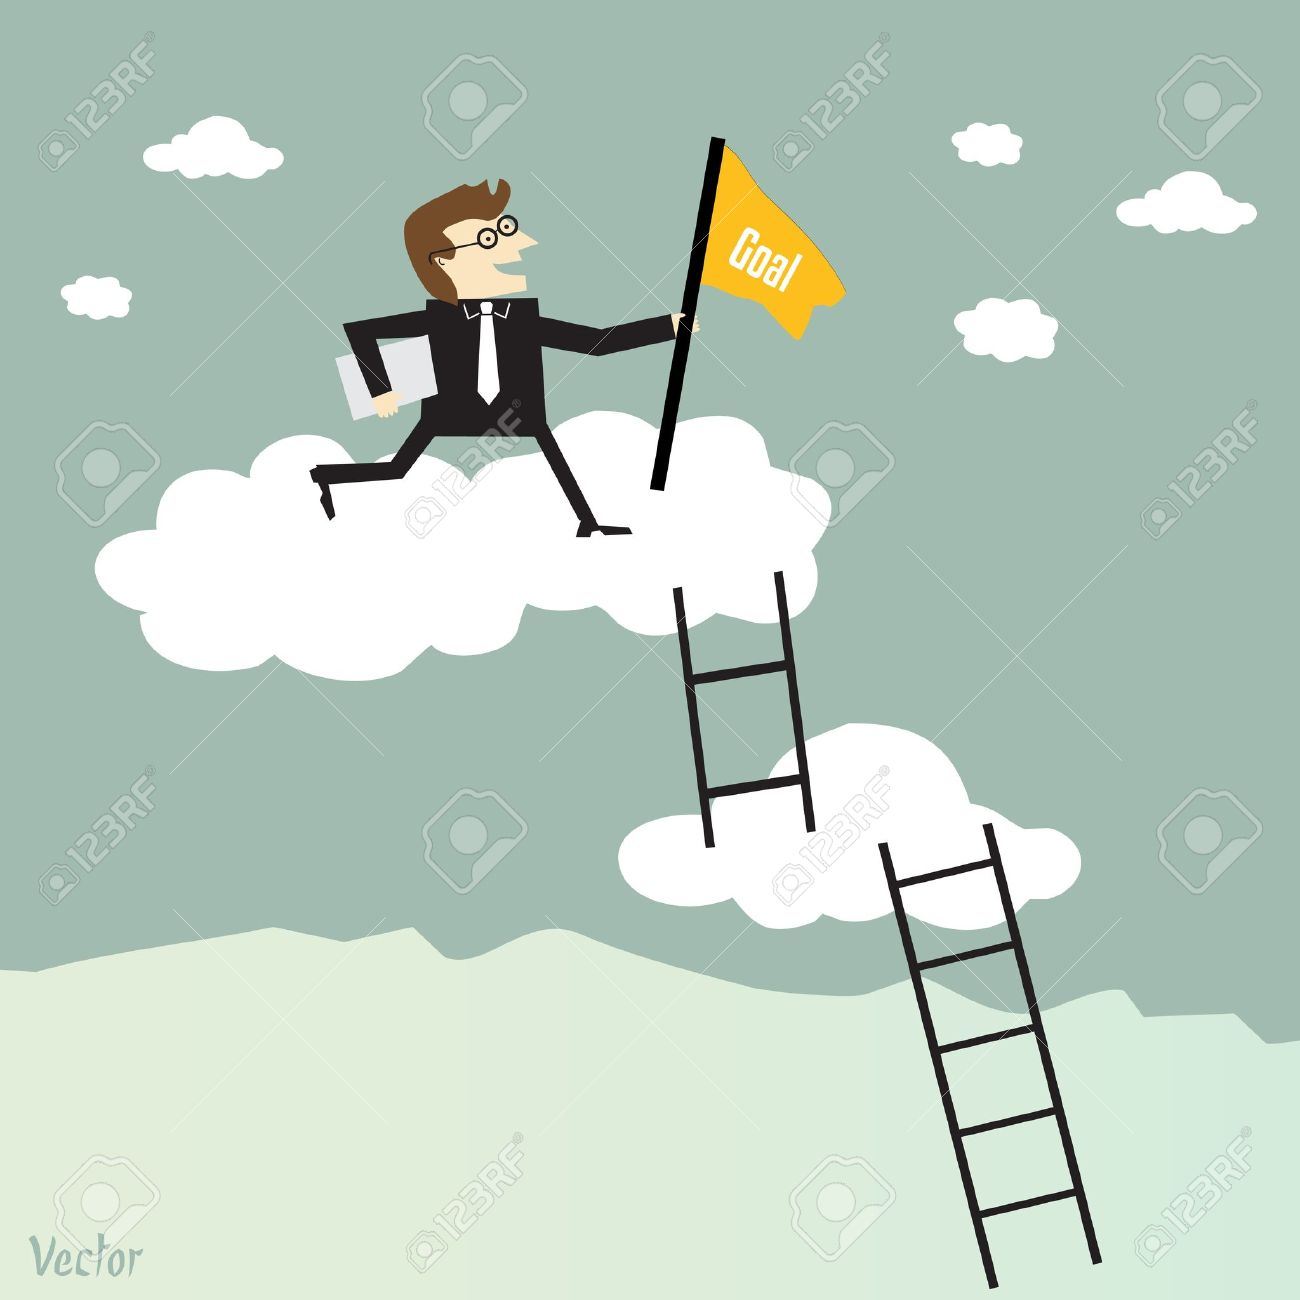 businessman climbing the ladder to success royalty free cliparts vectors and stock illustration image 20664930 businessman climbing the ladder to success